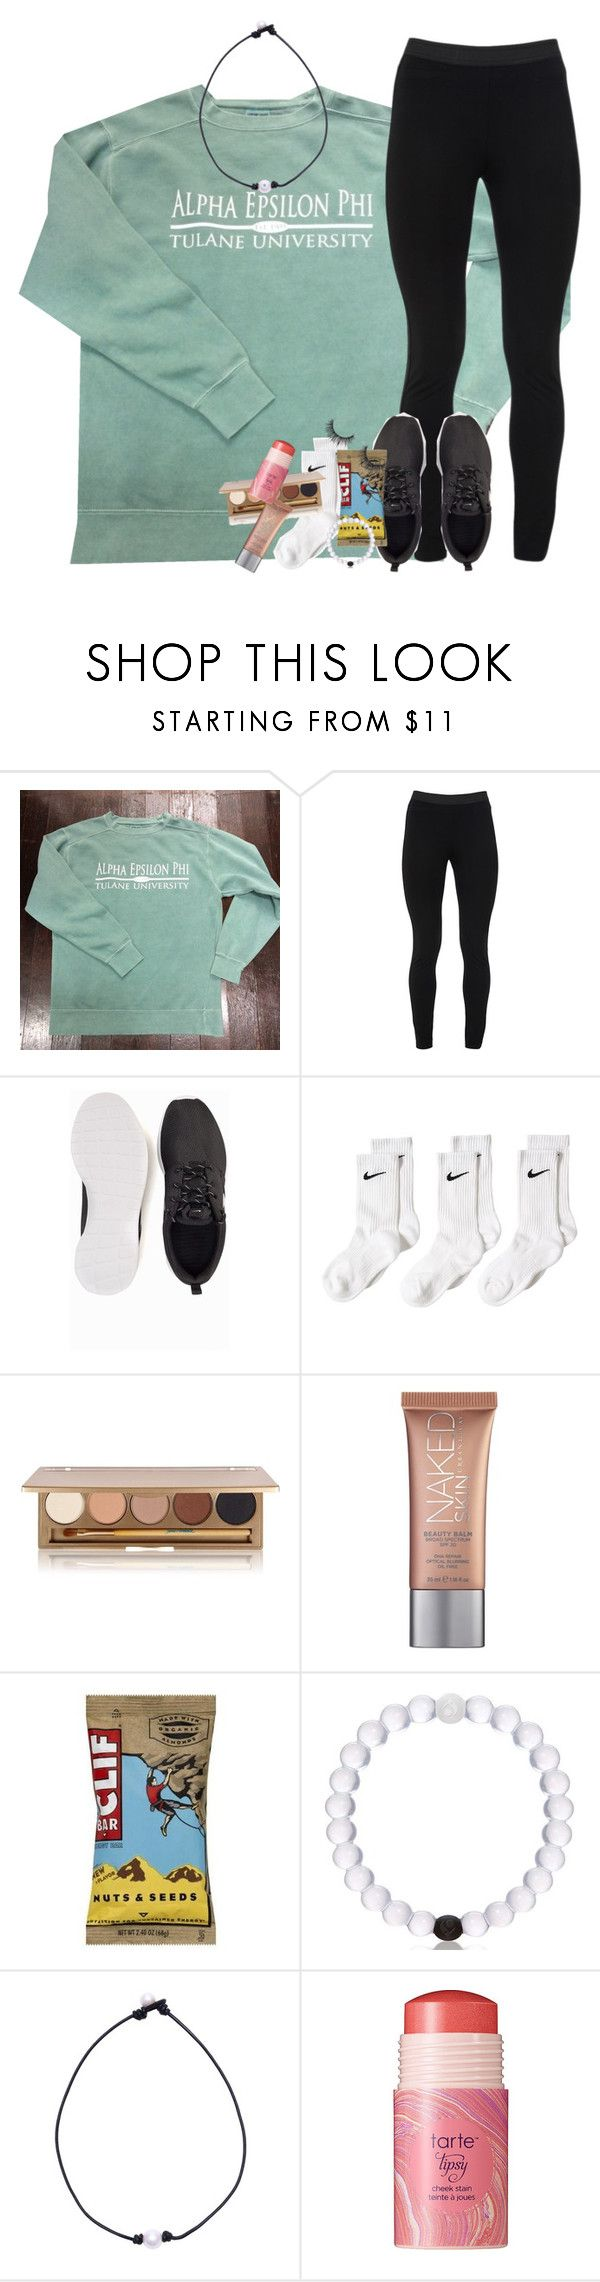 """""""lazy saturdays are bomb"""" by classynsouthern ❤ liked on Polyvore featuring Comfort Colors, Peace of Cloth, NIKE, Jane Iredale, Urban Decay and tarte"""